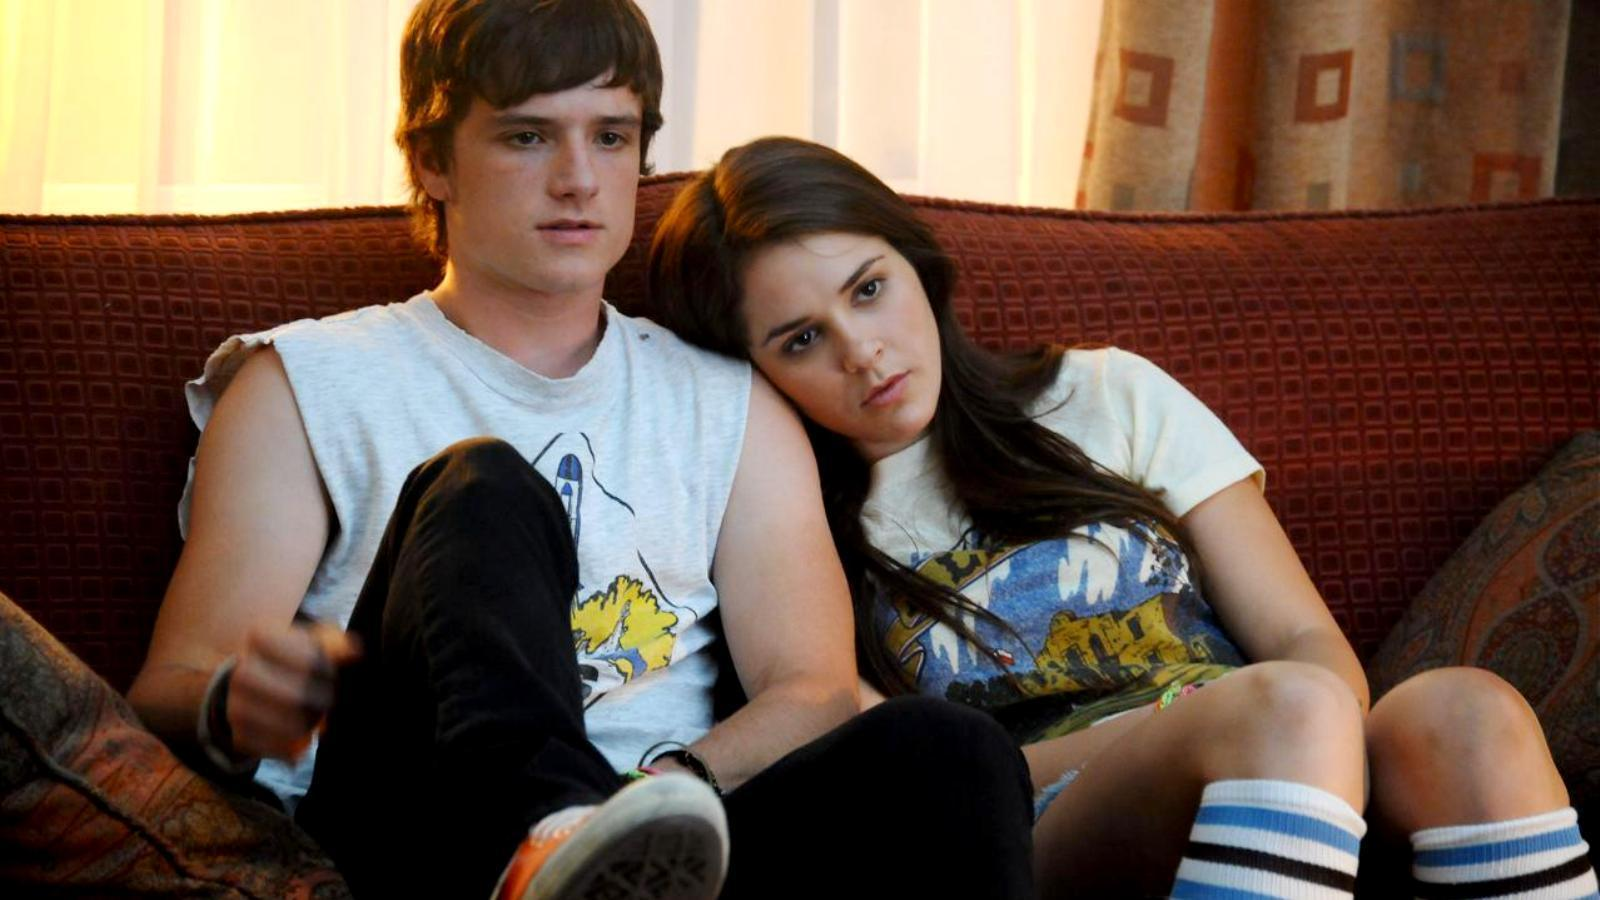 Clapton Davis (Josh Hutherson) and Riley Jones (Shanley Caswell) in Detention (2011)